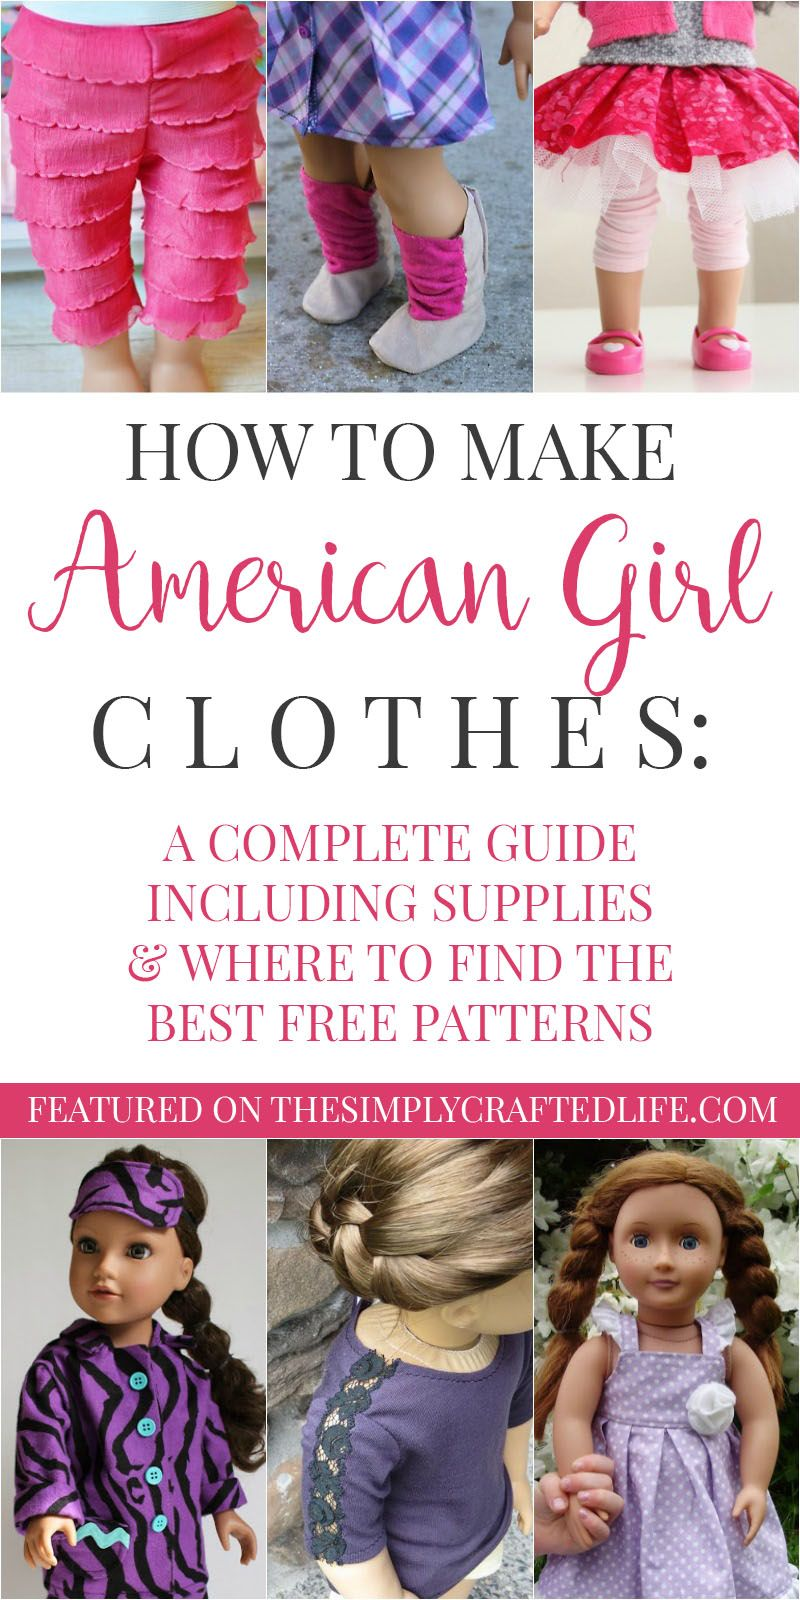 How to Make American Girl Doll Clothes: A Guide to Free AG Doll Patterns